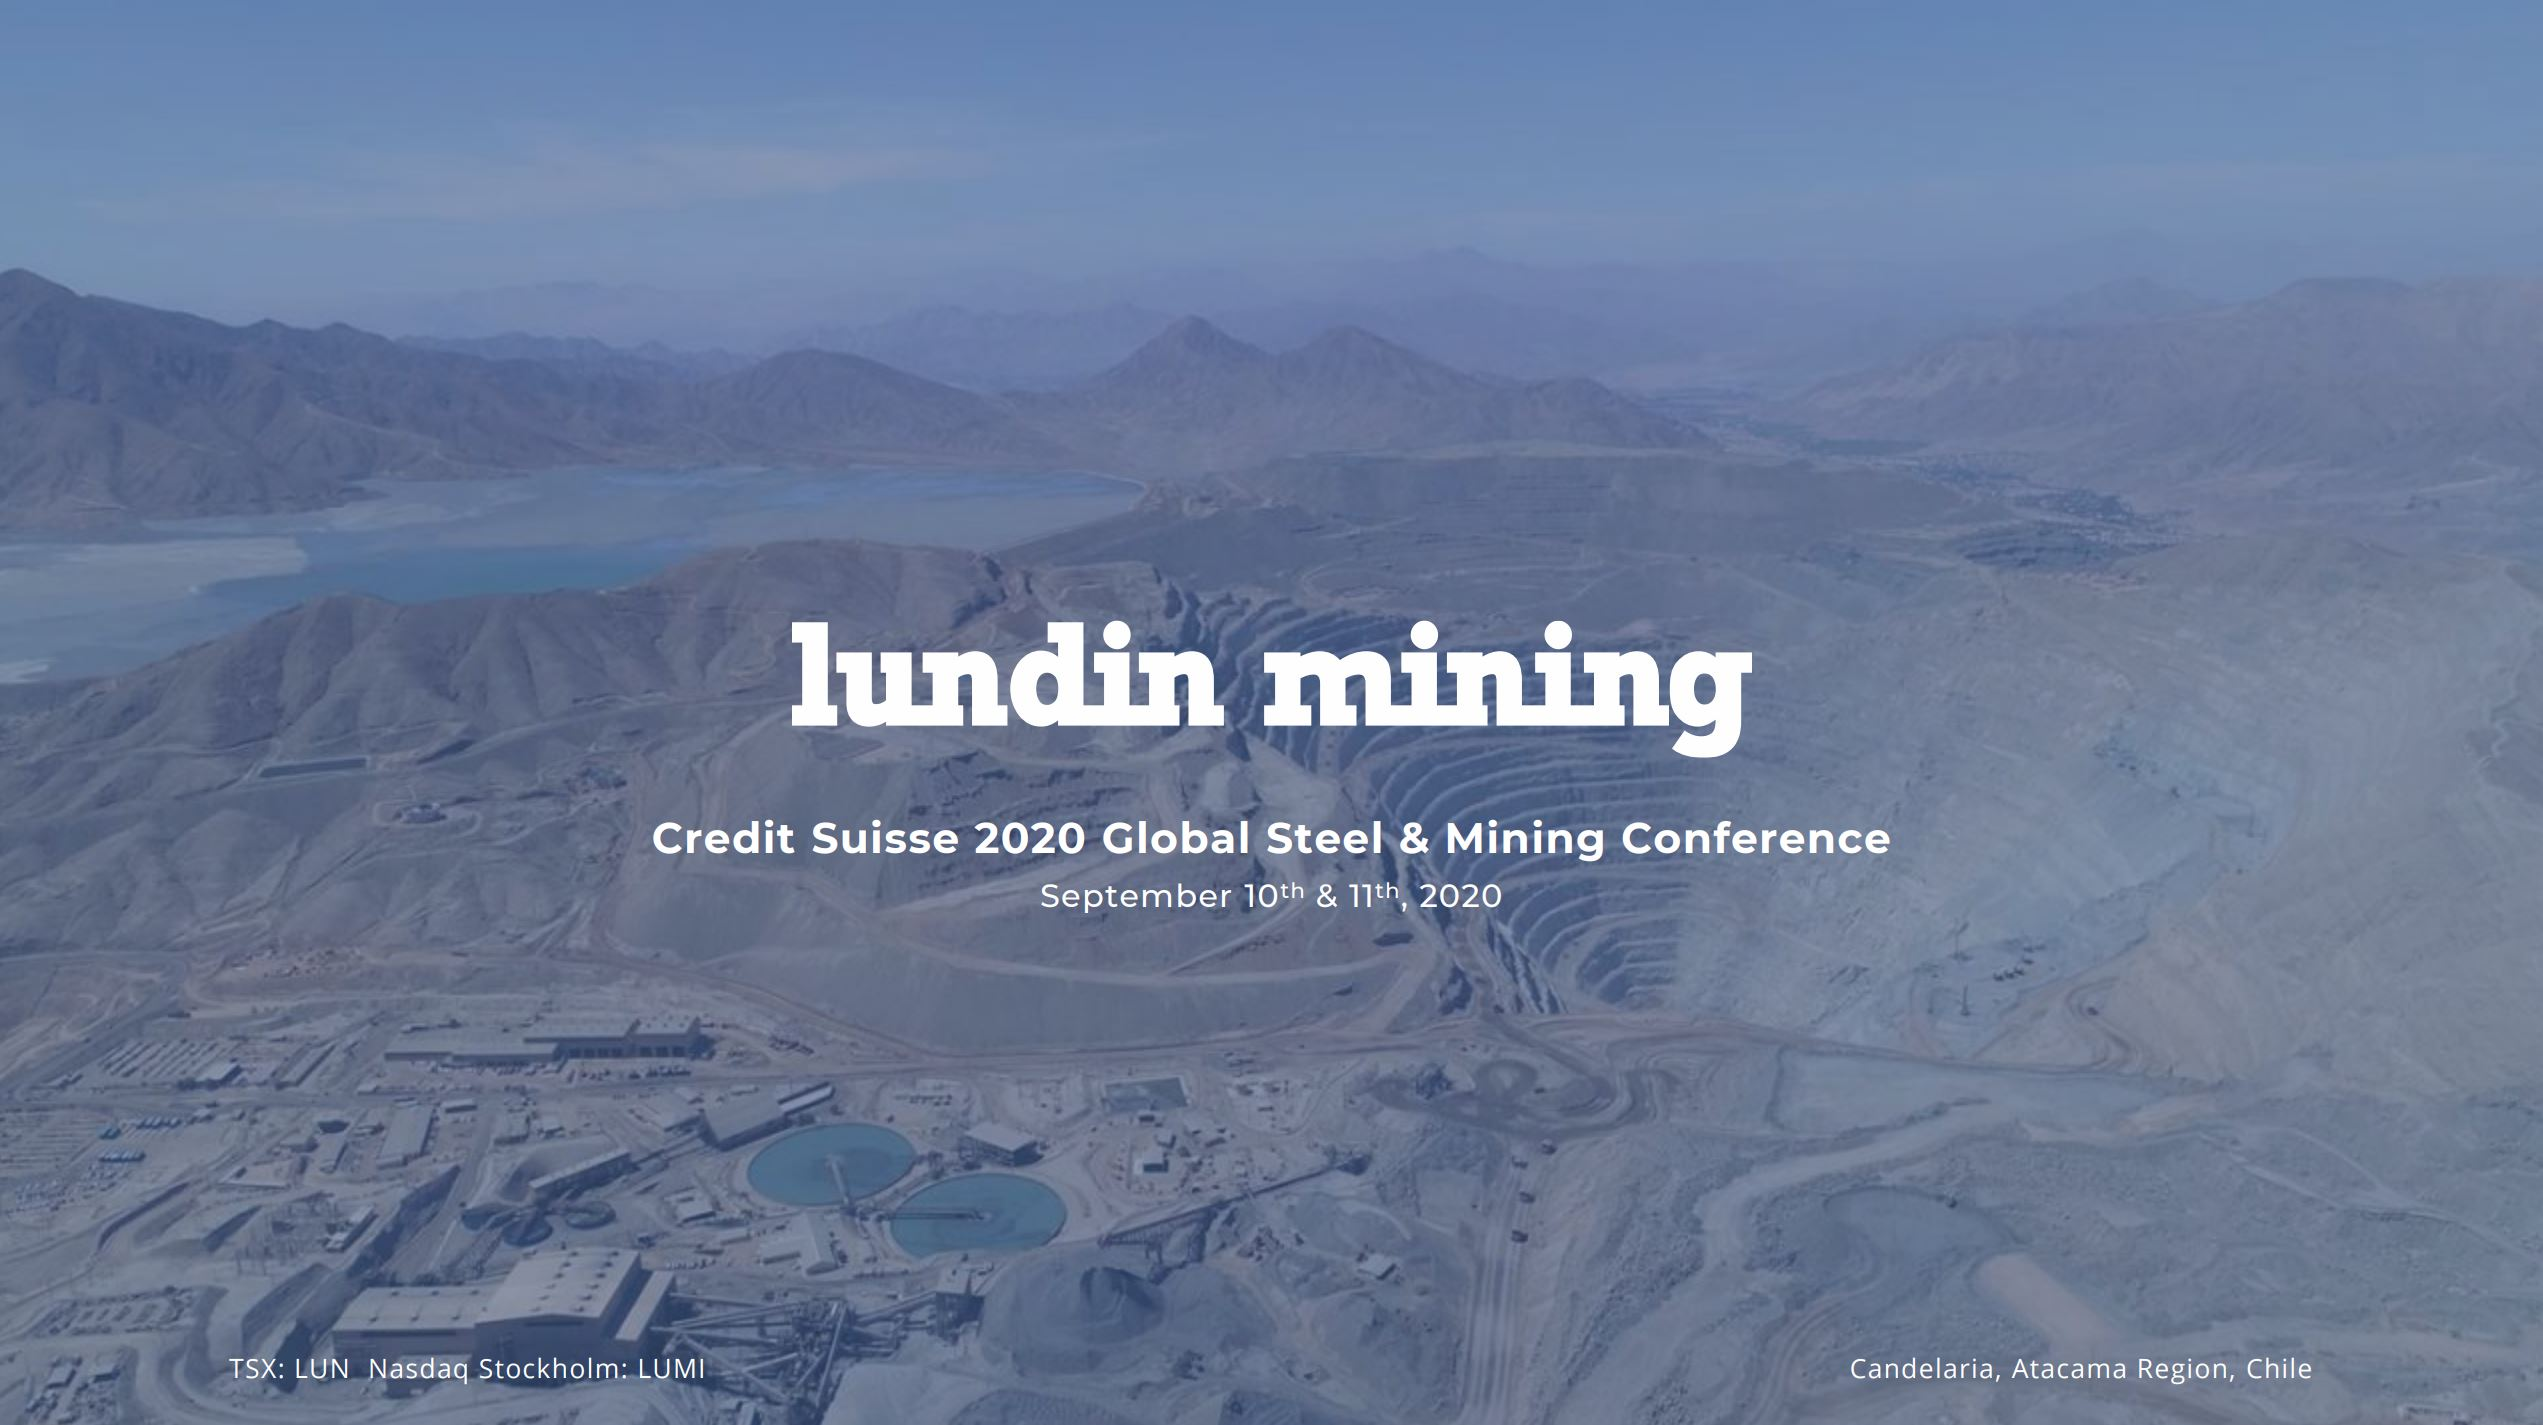 Credit Suisse 2020 Global Steel & Mining Conference